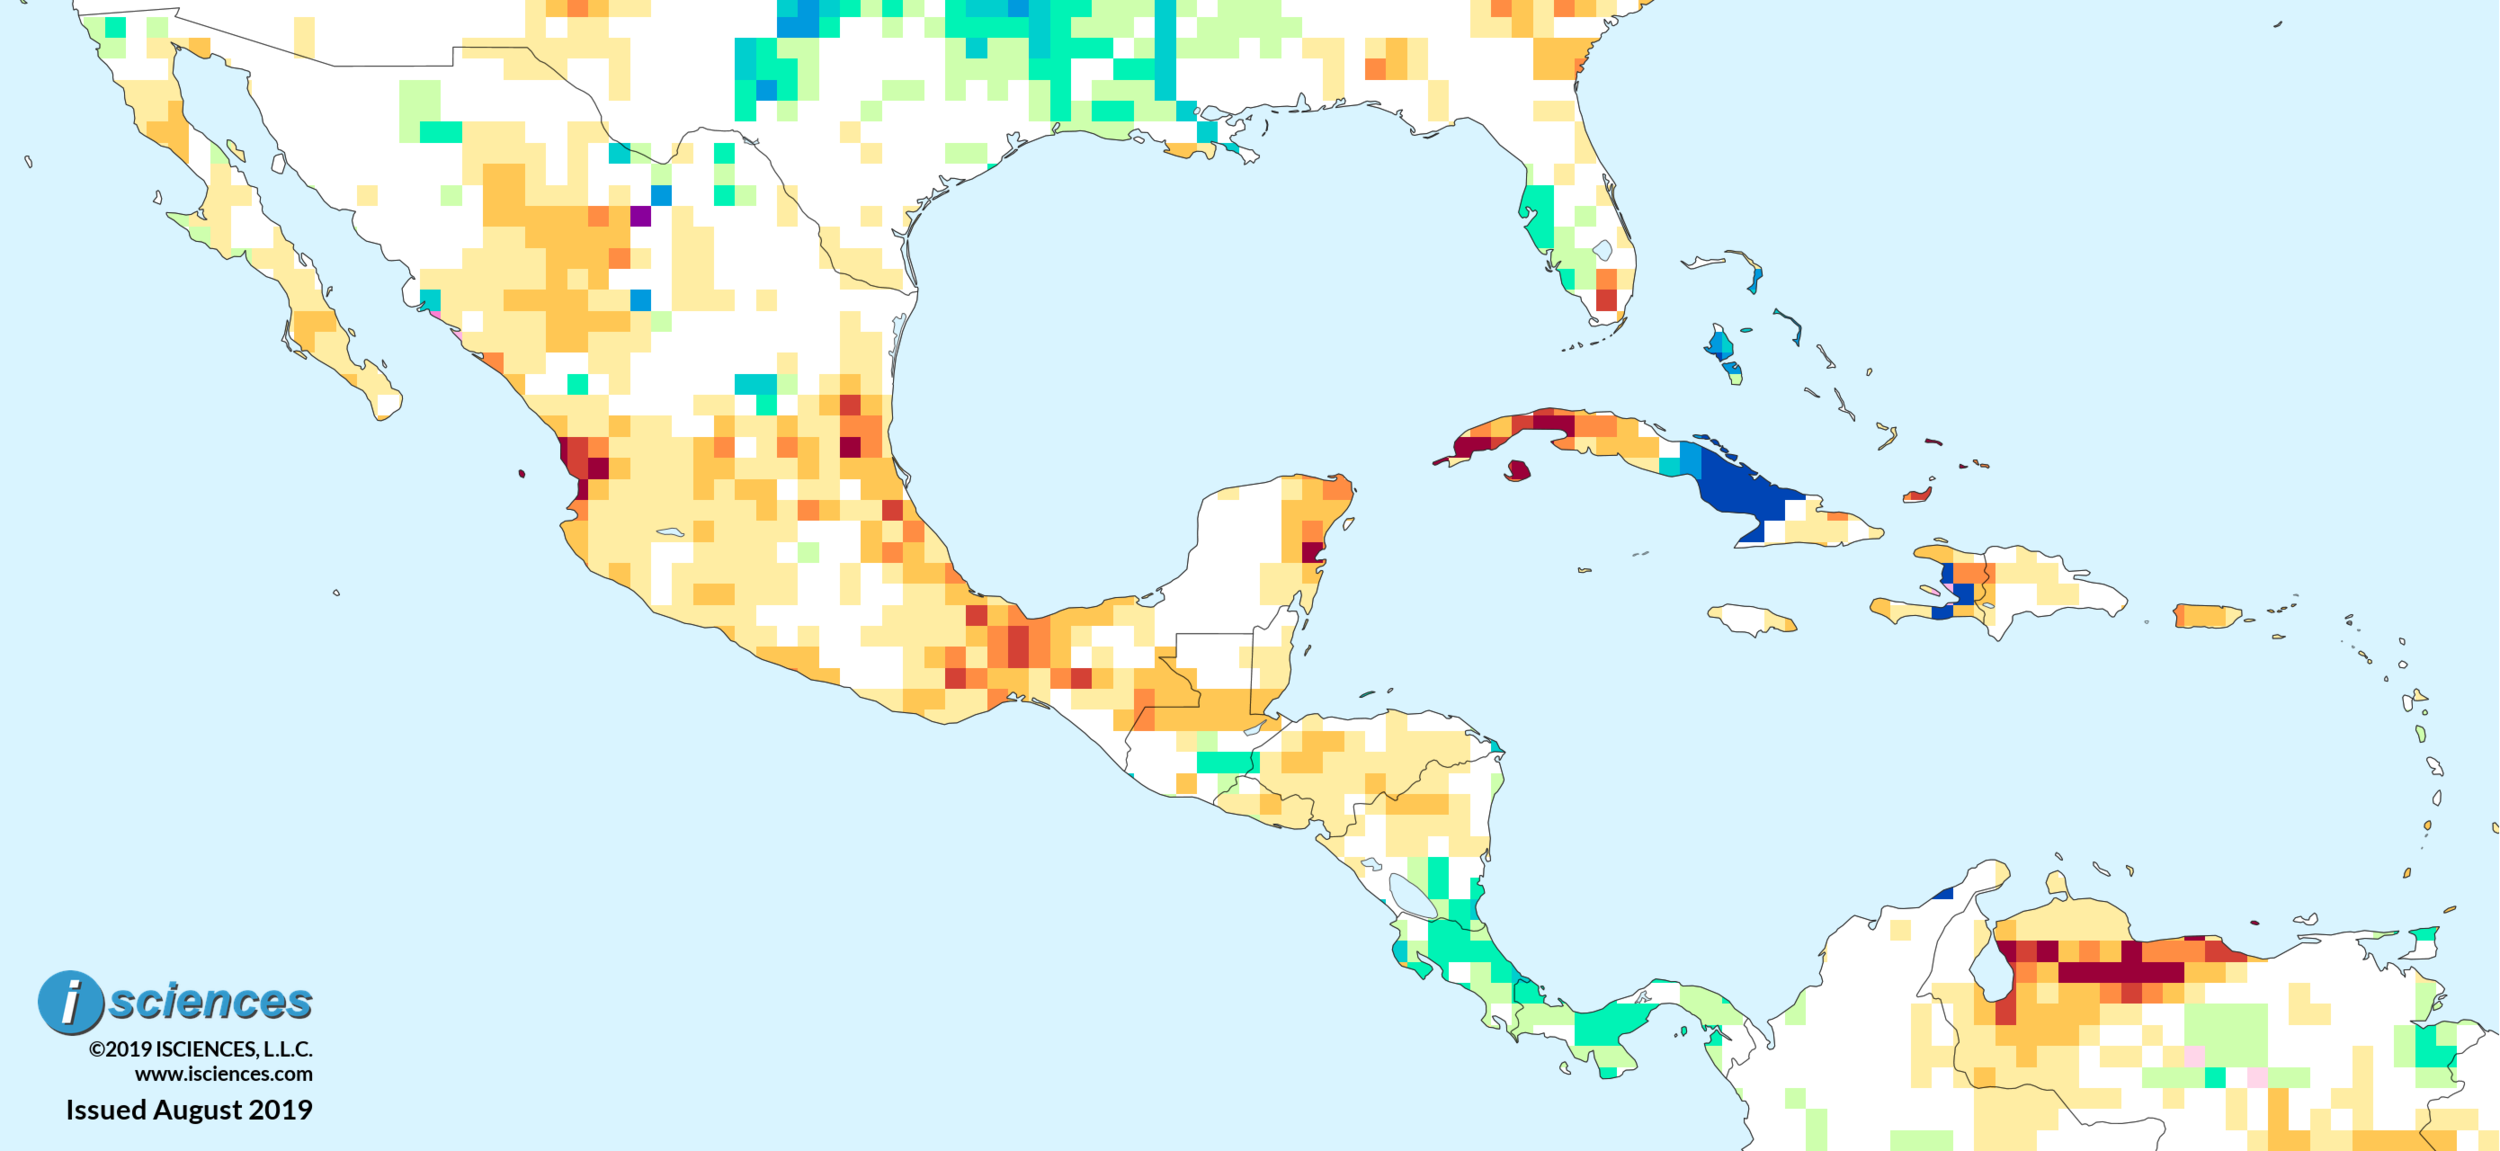 Mexico, Central America, & the Caribbean: Intense water ...